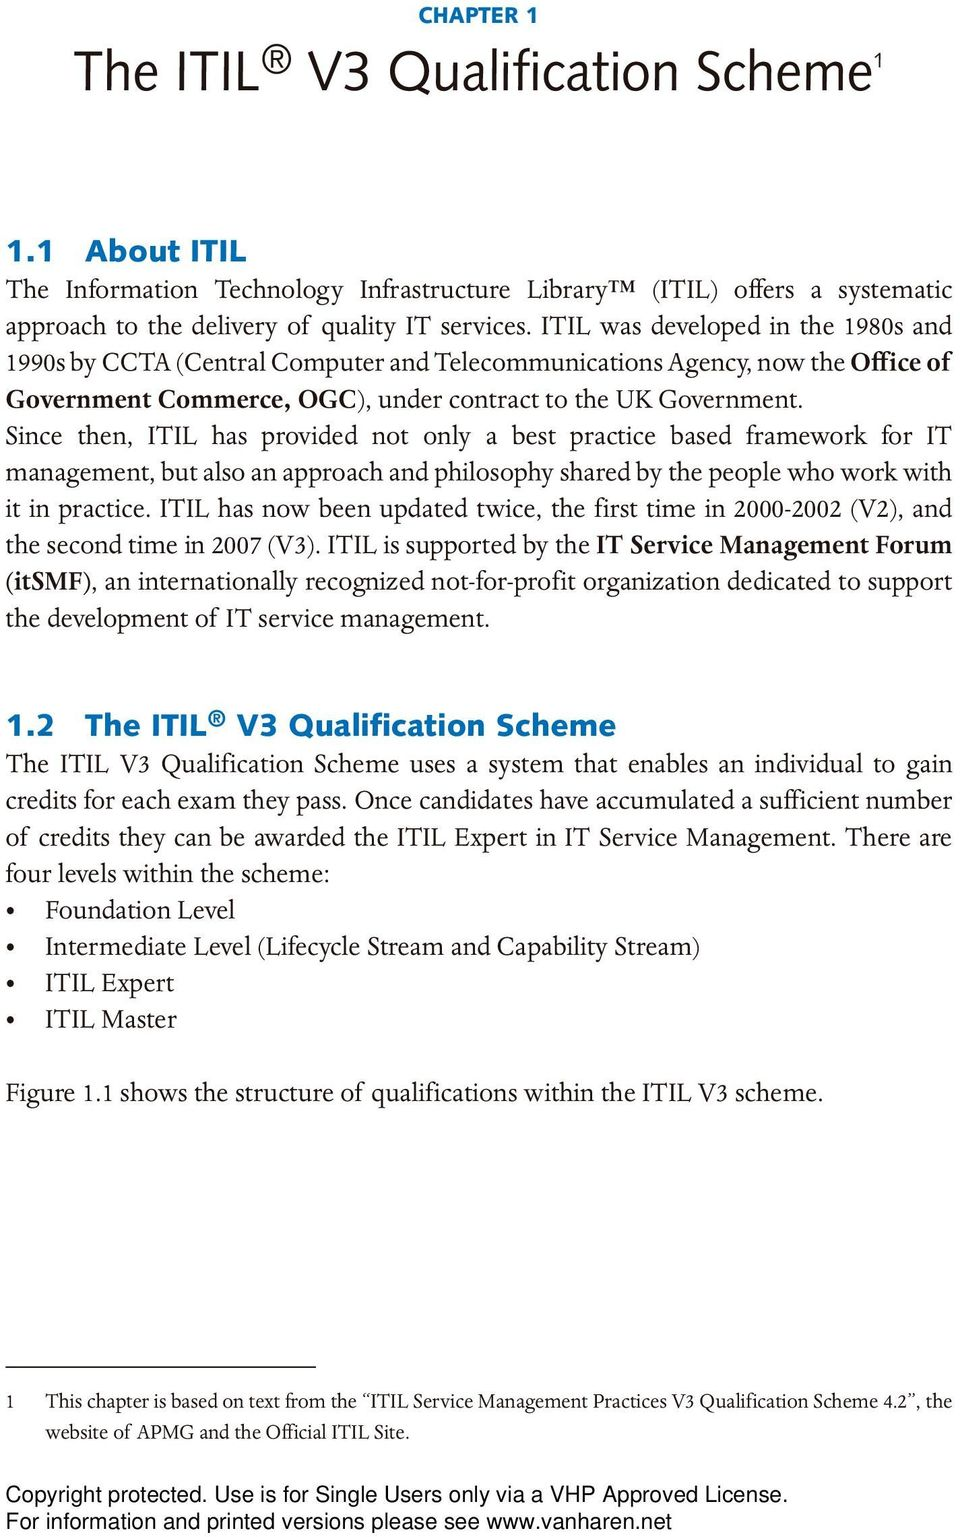 Since then, ITIL has provided not only a best practice based framework for IT management, but also an approach and philosophy shared by the people who work with it in practice.